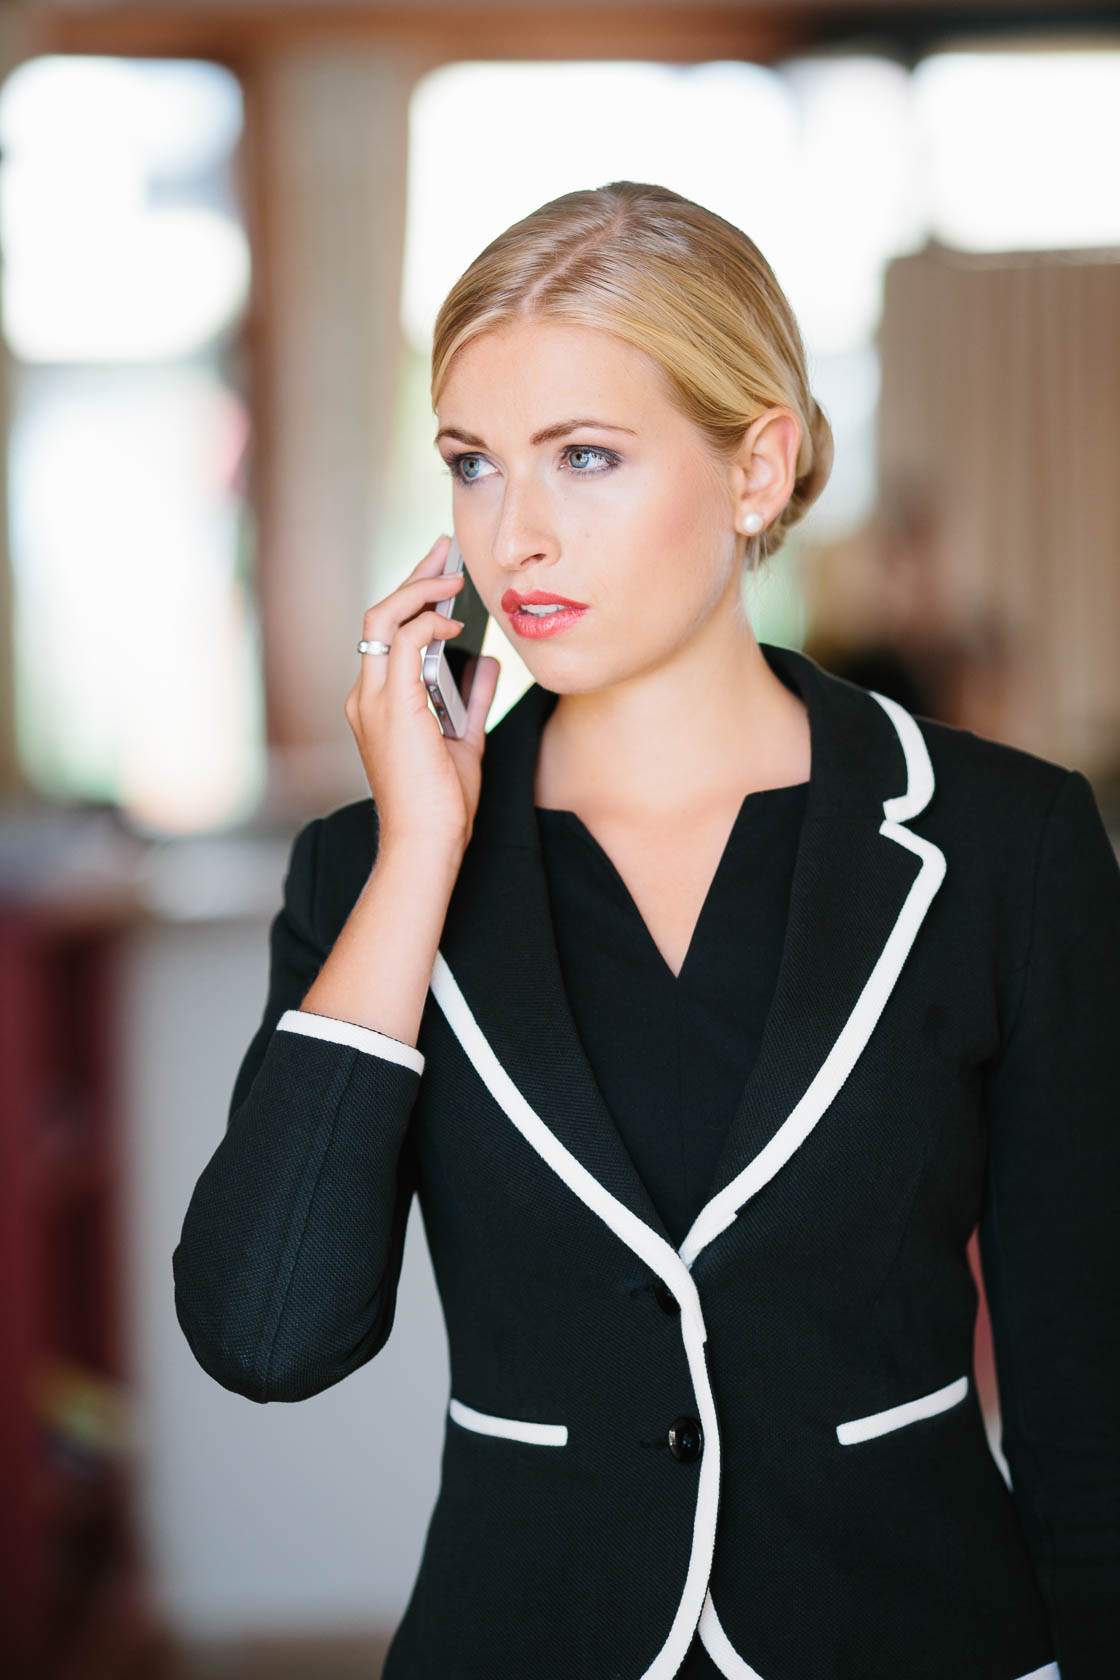 Commercial Styled Shoot mit Anna in der Villa Toskana Hotel Business Portraits Corporate